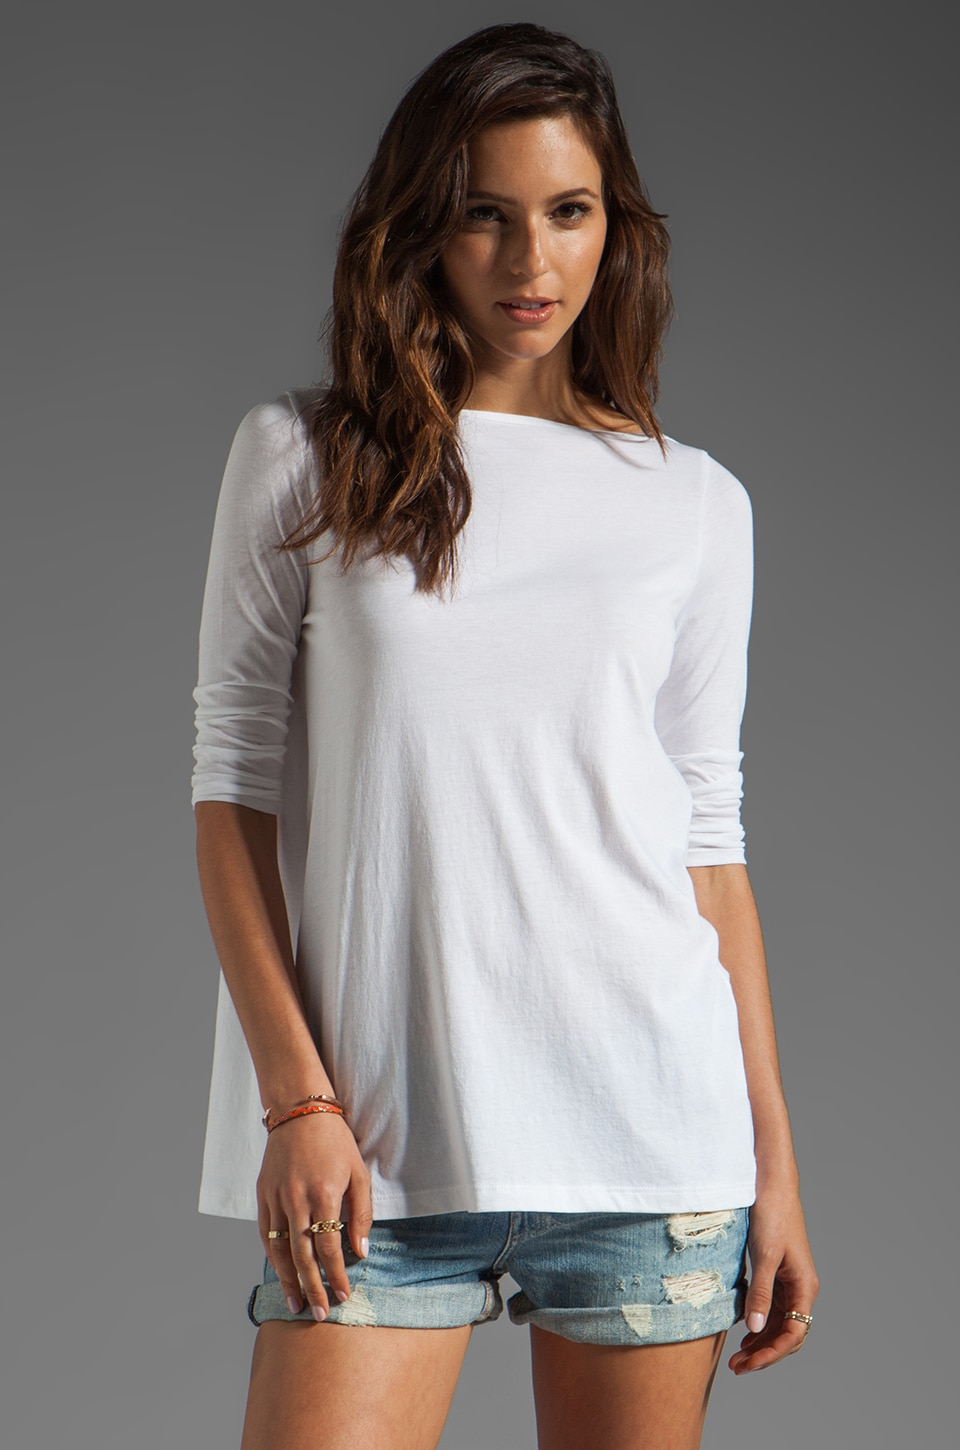 DemyLee Katrina Long Sleeve Top in White